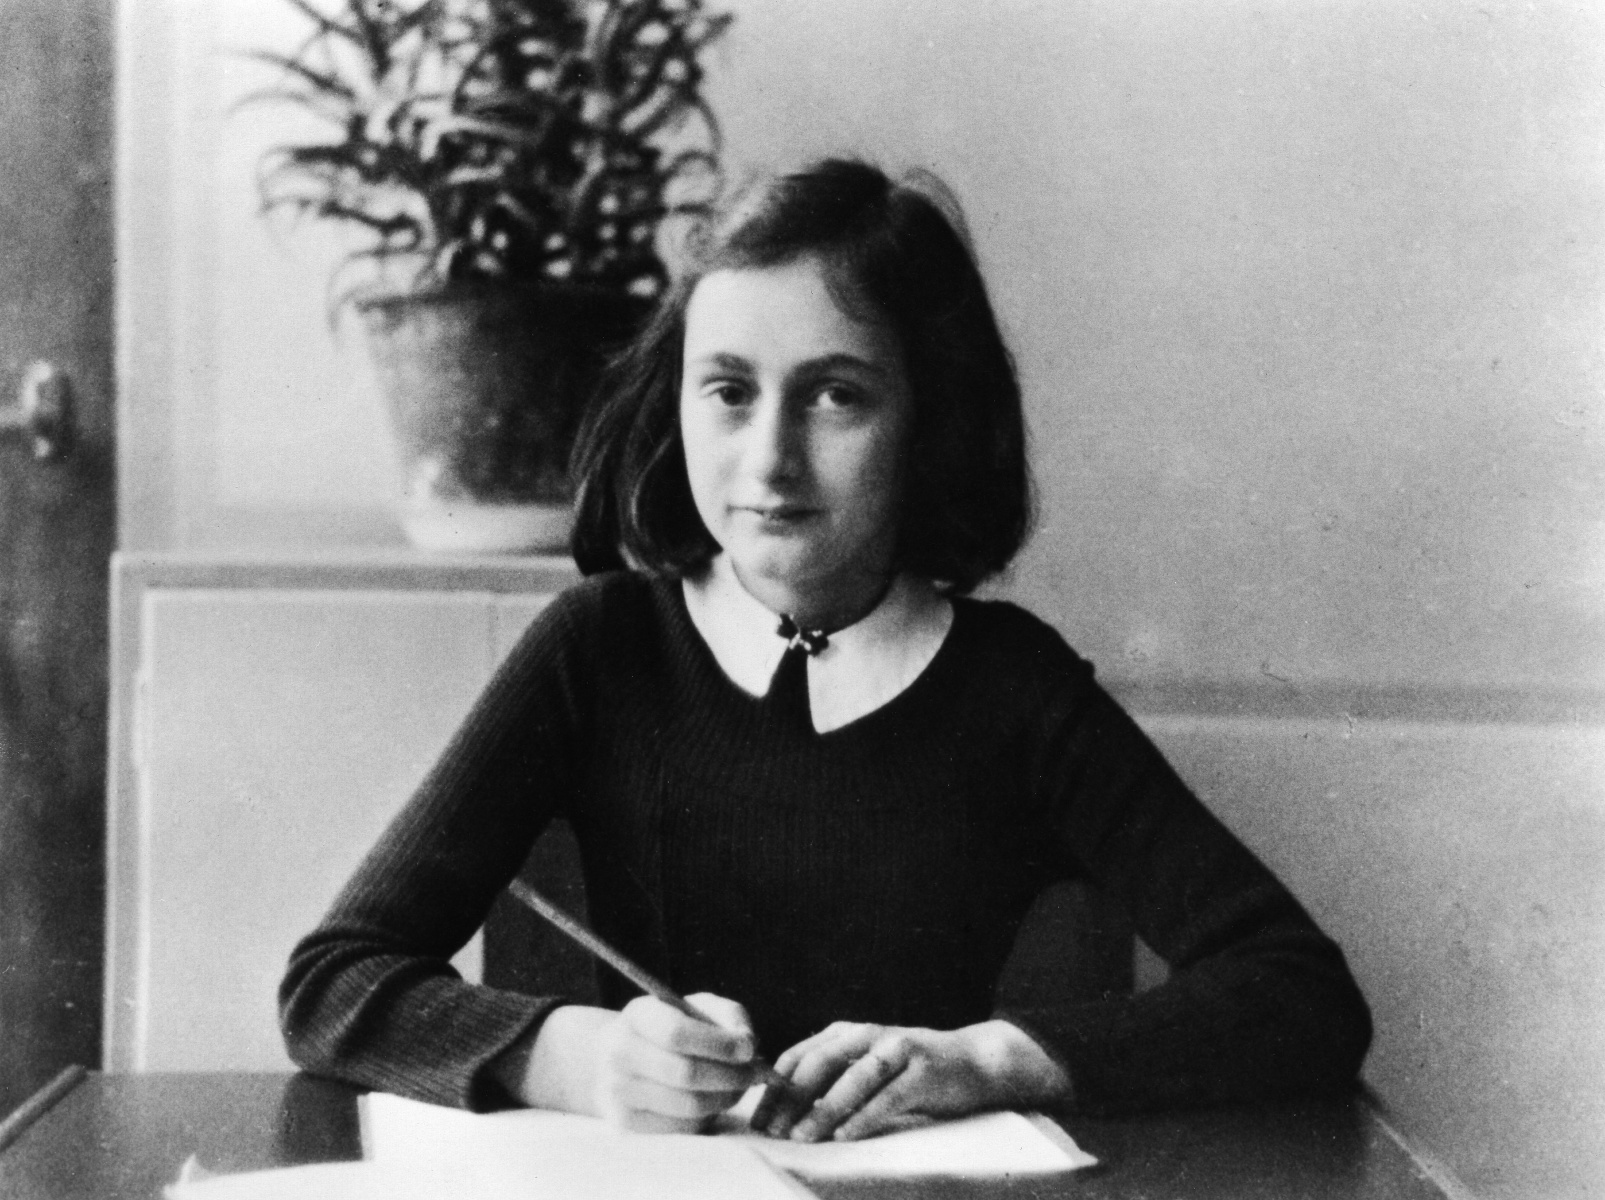 12-year-old Anne Frank in 1941